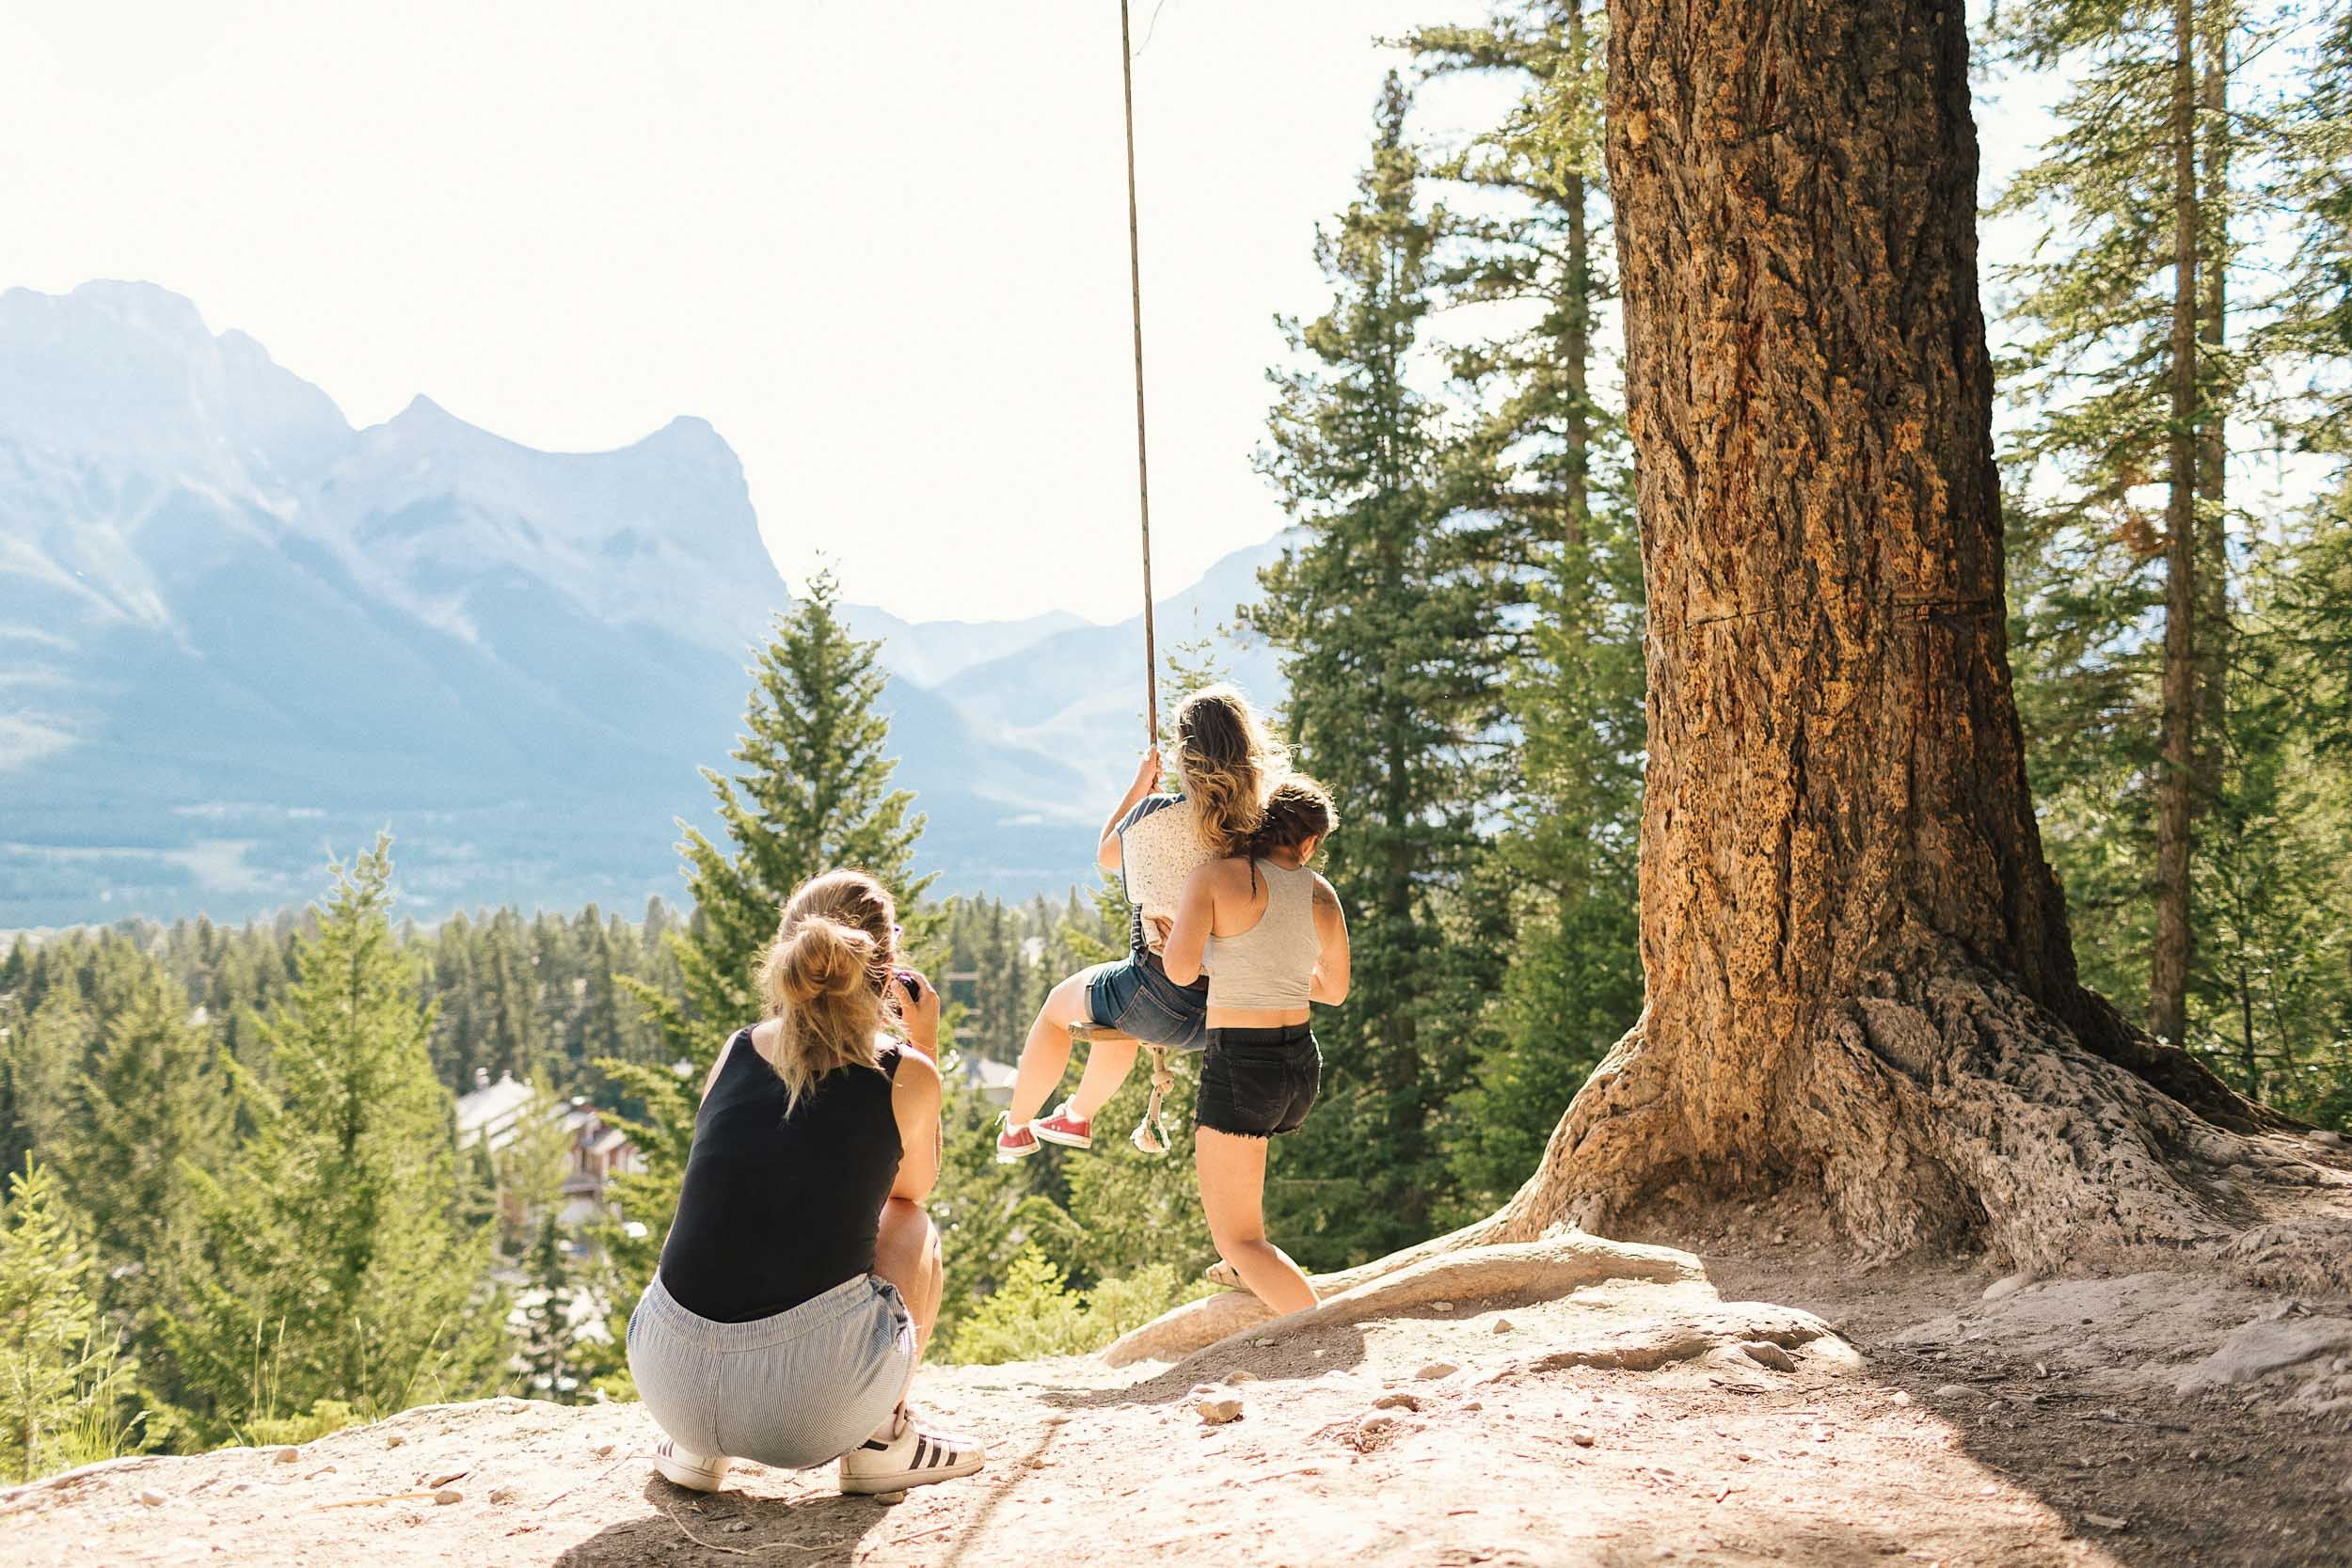 The best photo spot in Canmore, Alberta, Canada